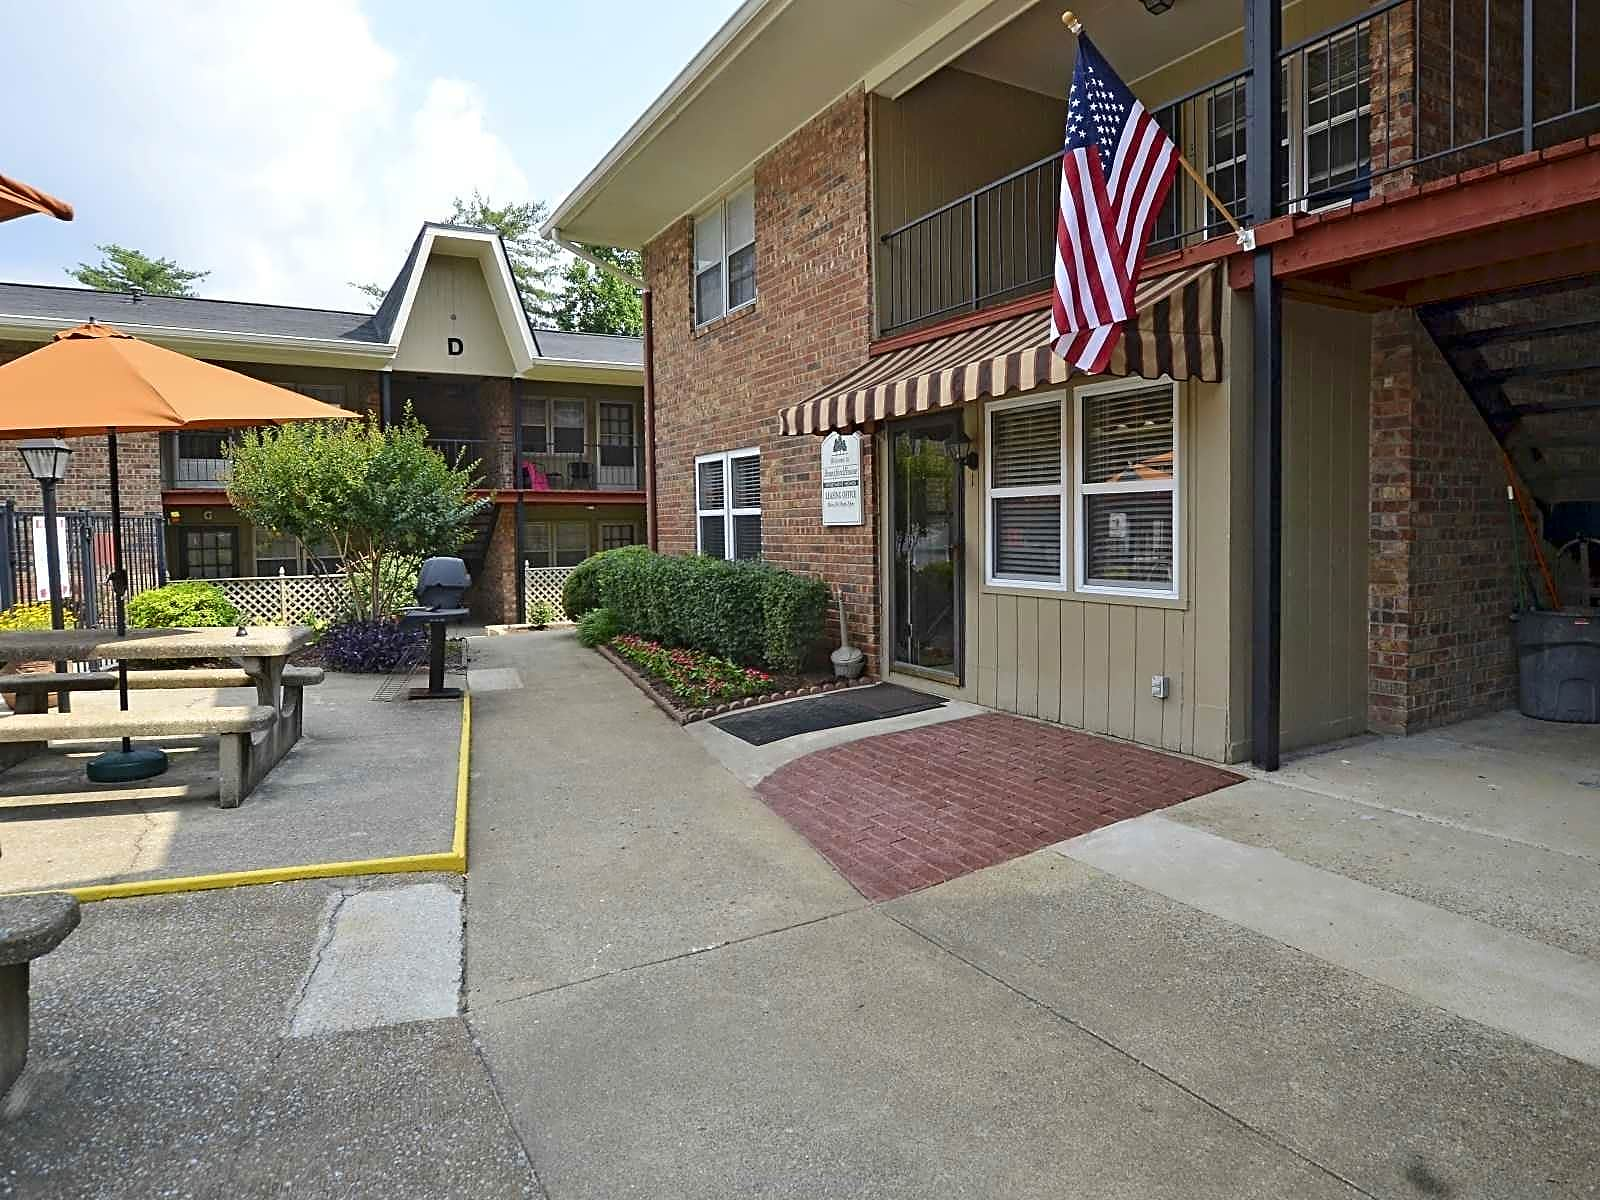 Apartments and Houses for Rent Near Me in Nashville TN